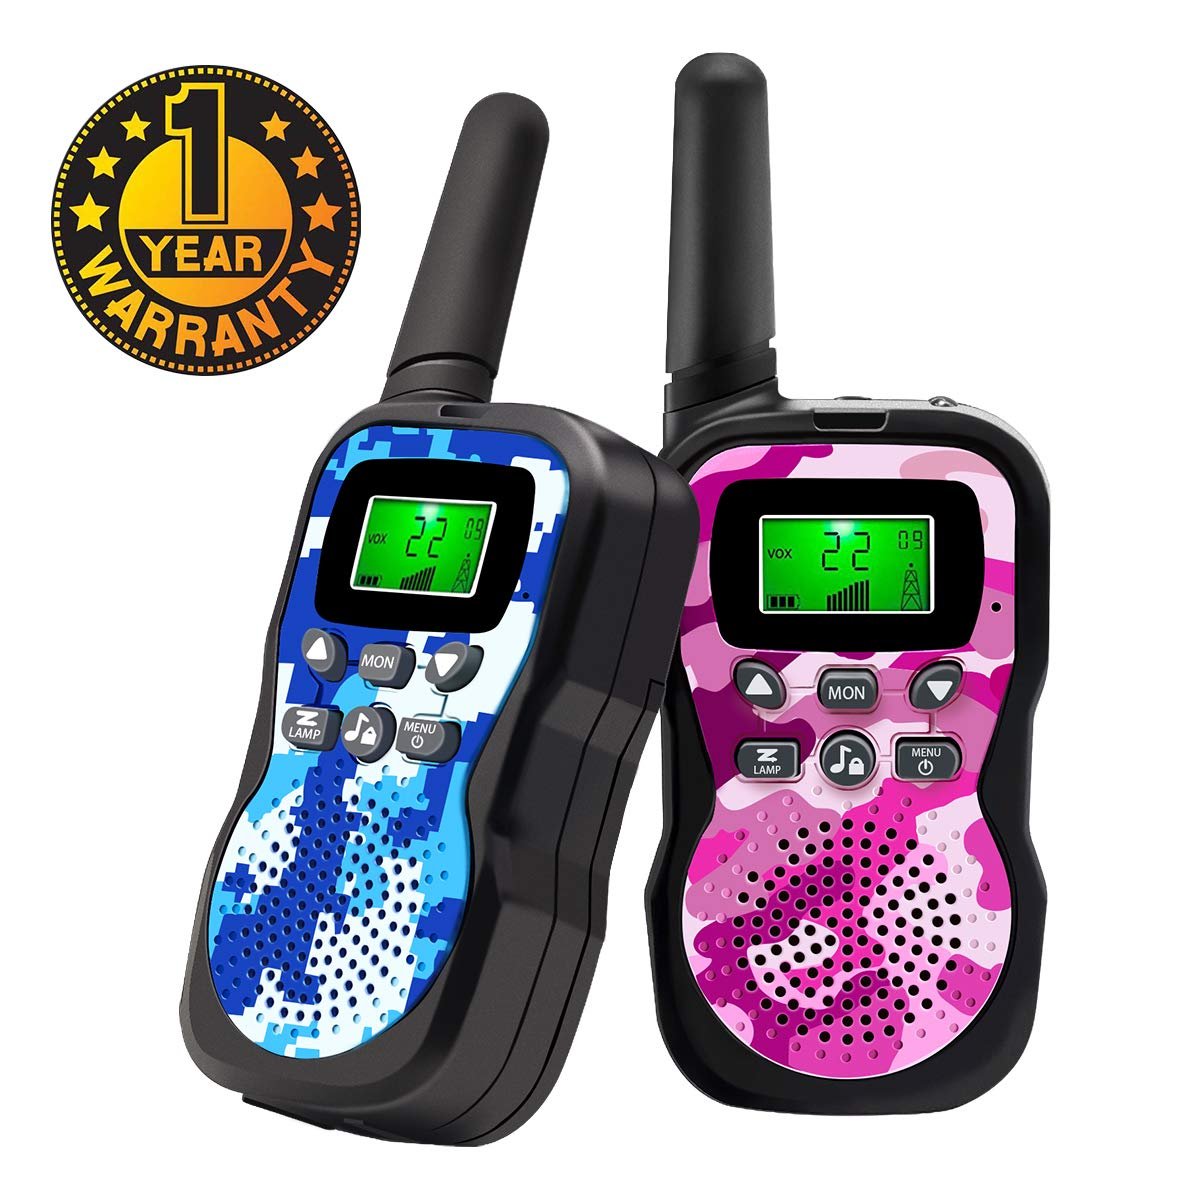 Walkie Talkies For Kids , Range Up to 3 Miles With Backlit LCD Display And Flashlight Walkie Talkies For Boys Girls Outdoor Toys For 3-12 Year Old Boys Girls Bset Gifts For 3-12 Year Old Boys Girls by Sun-Team (Image #1)